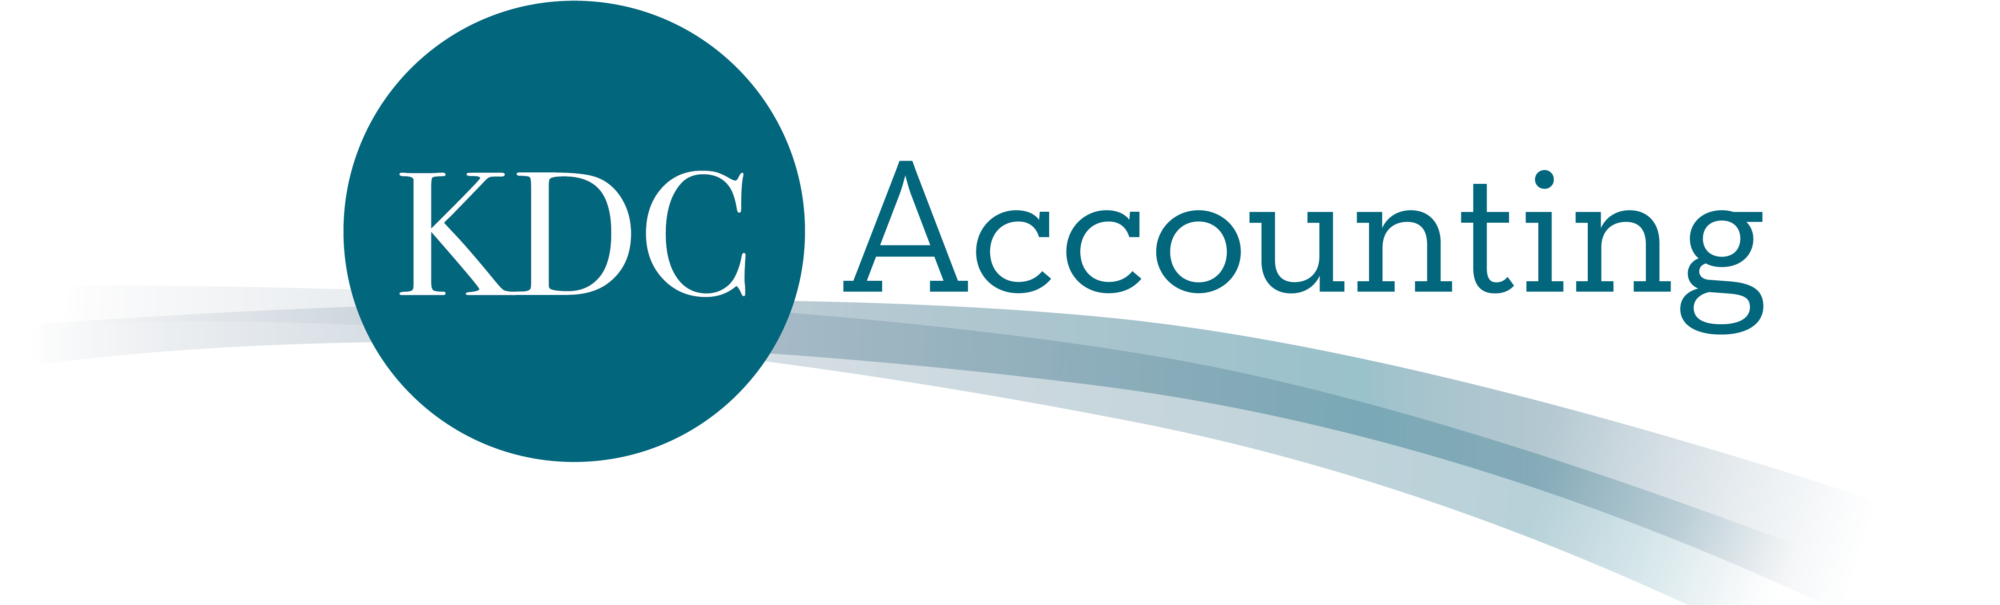 KDC Accounting